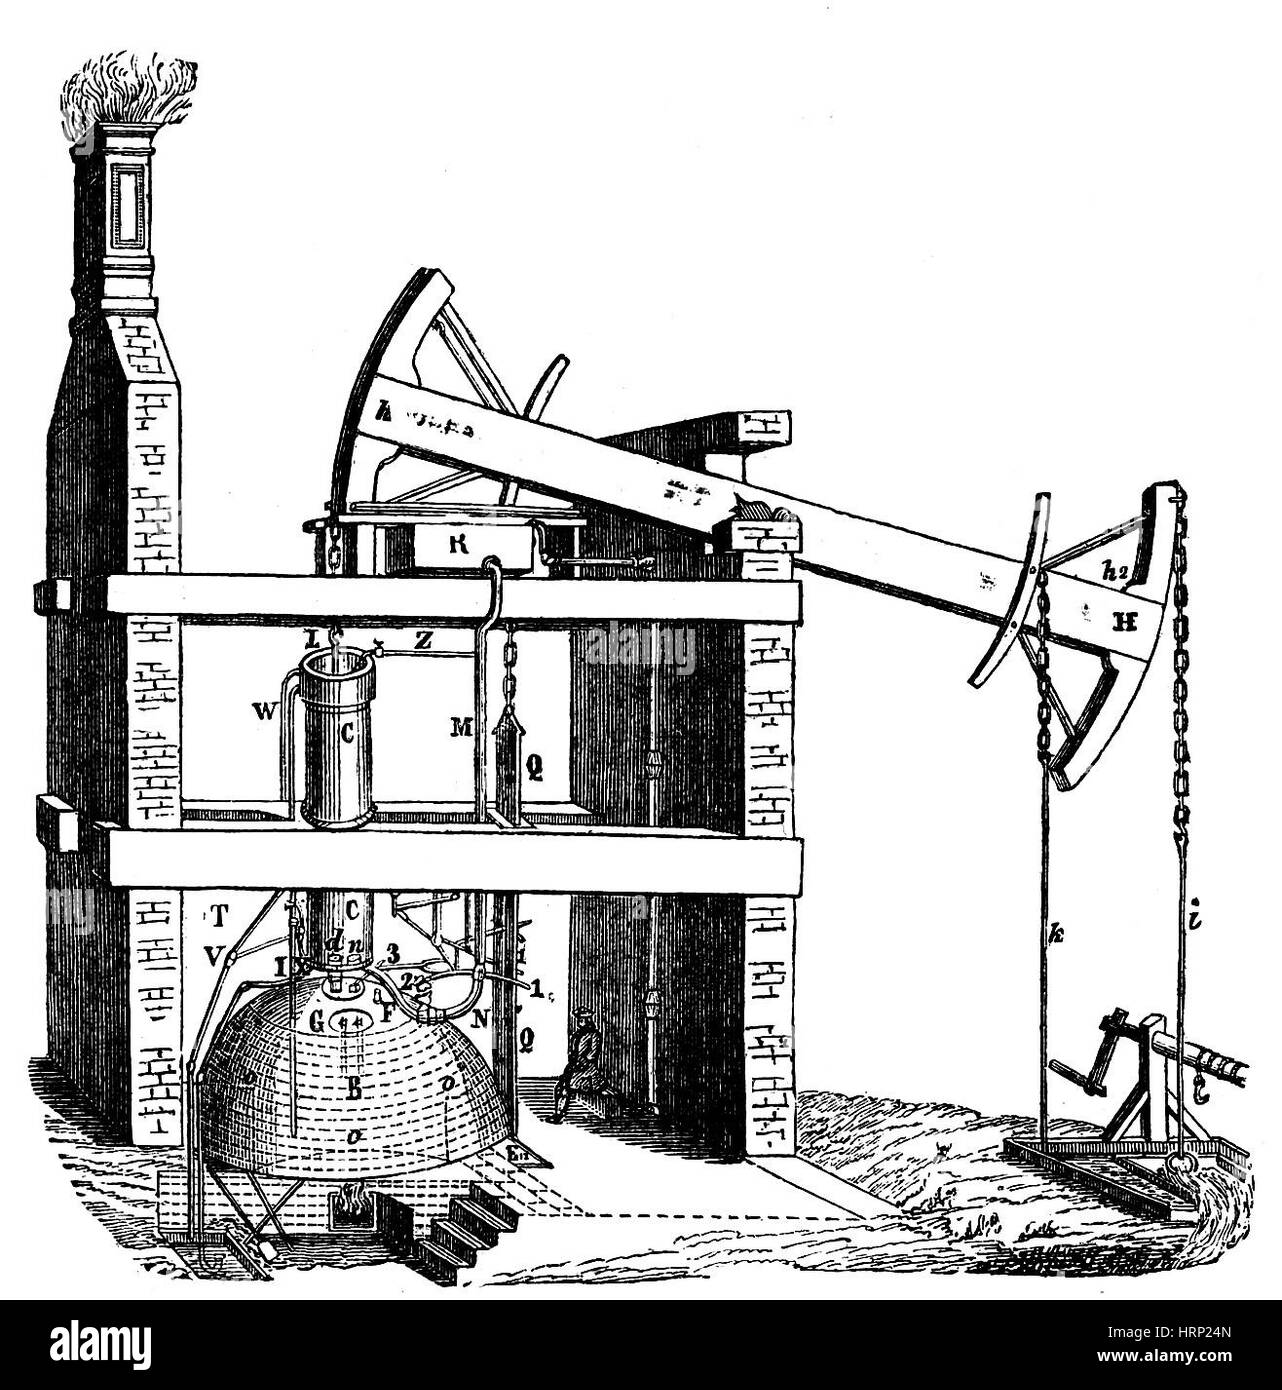 Newcomen Atmospherical Steam Engine, 1712